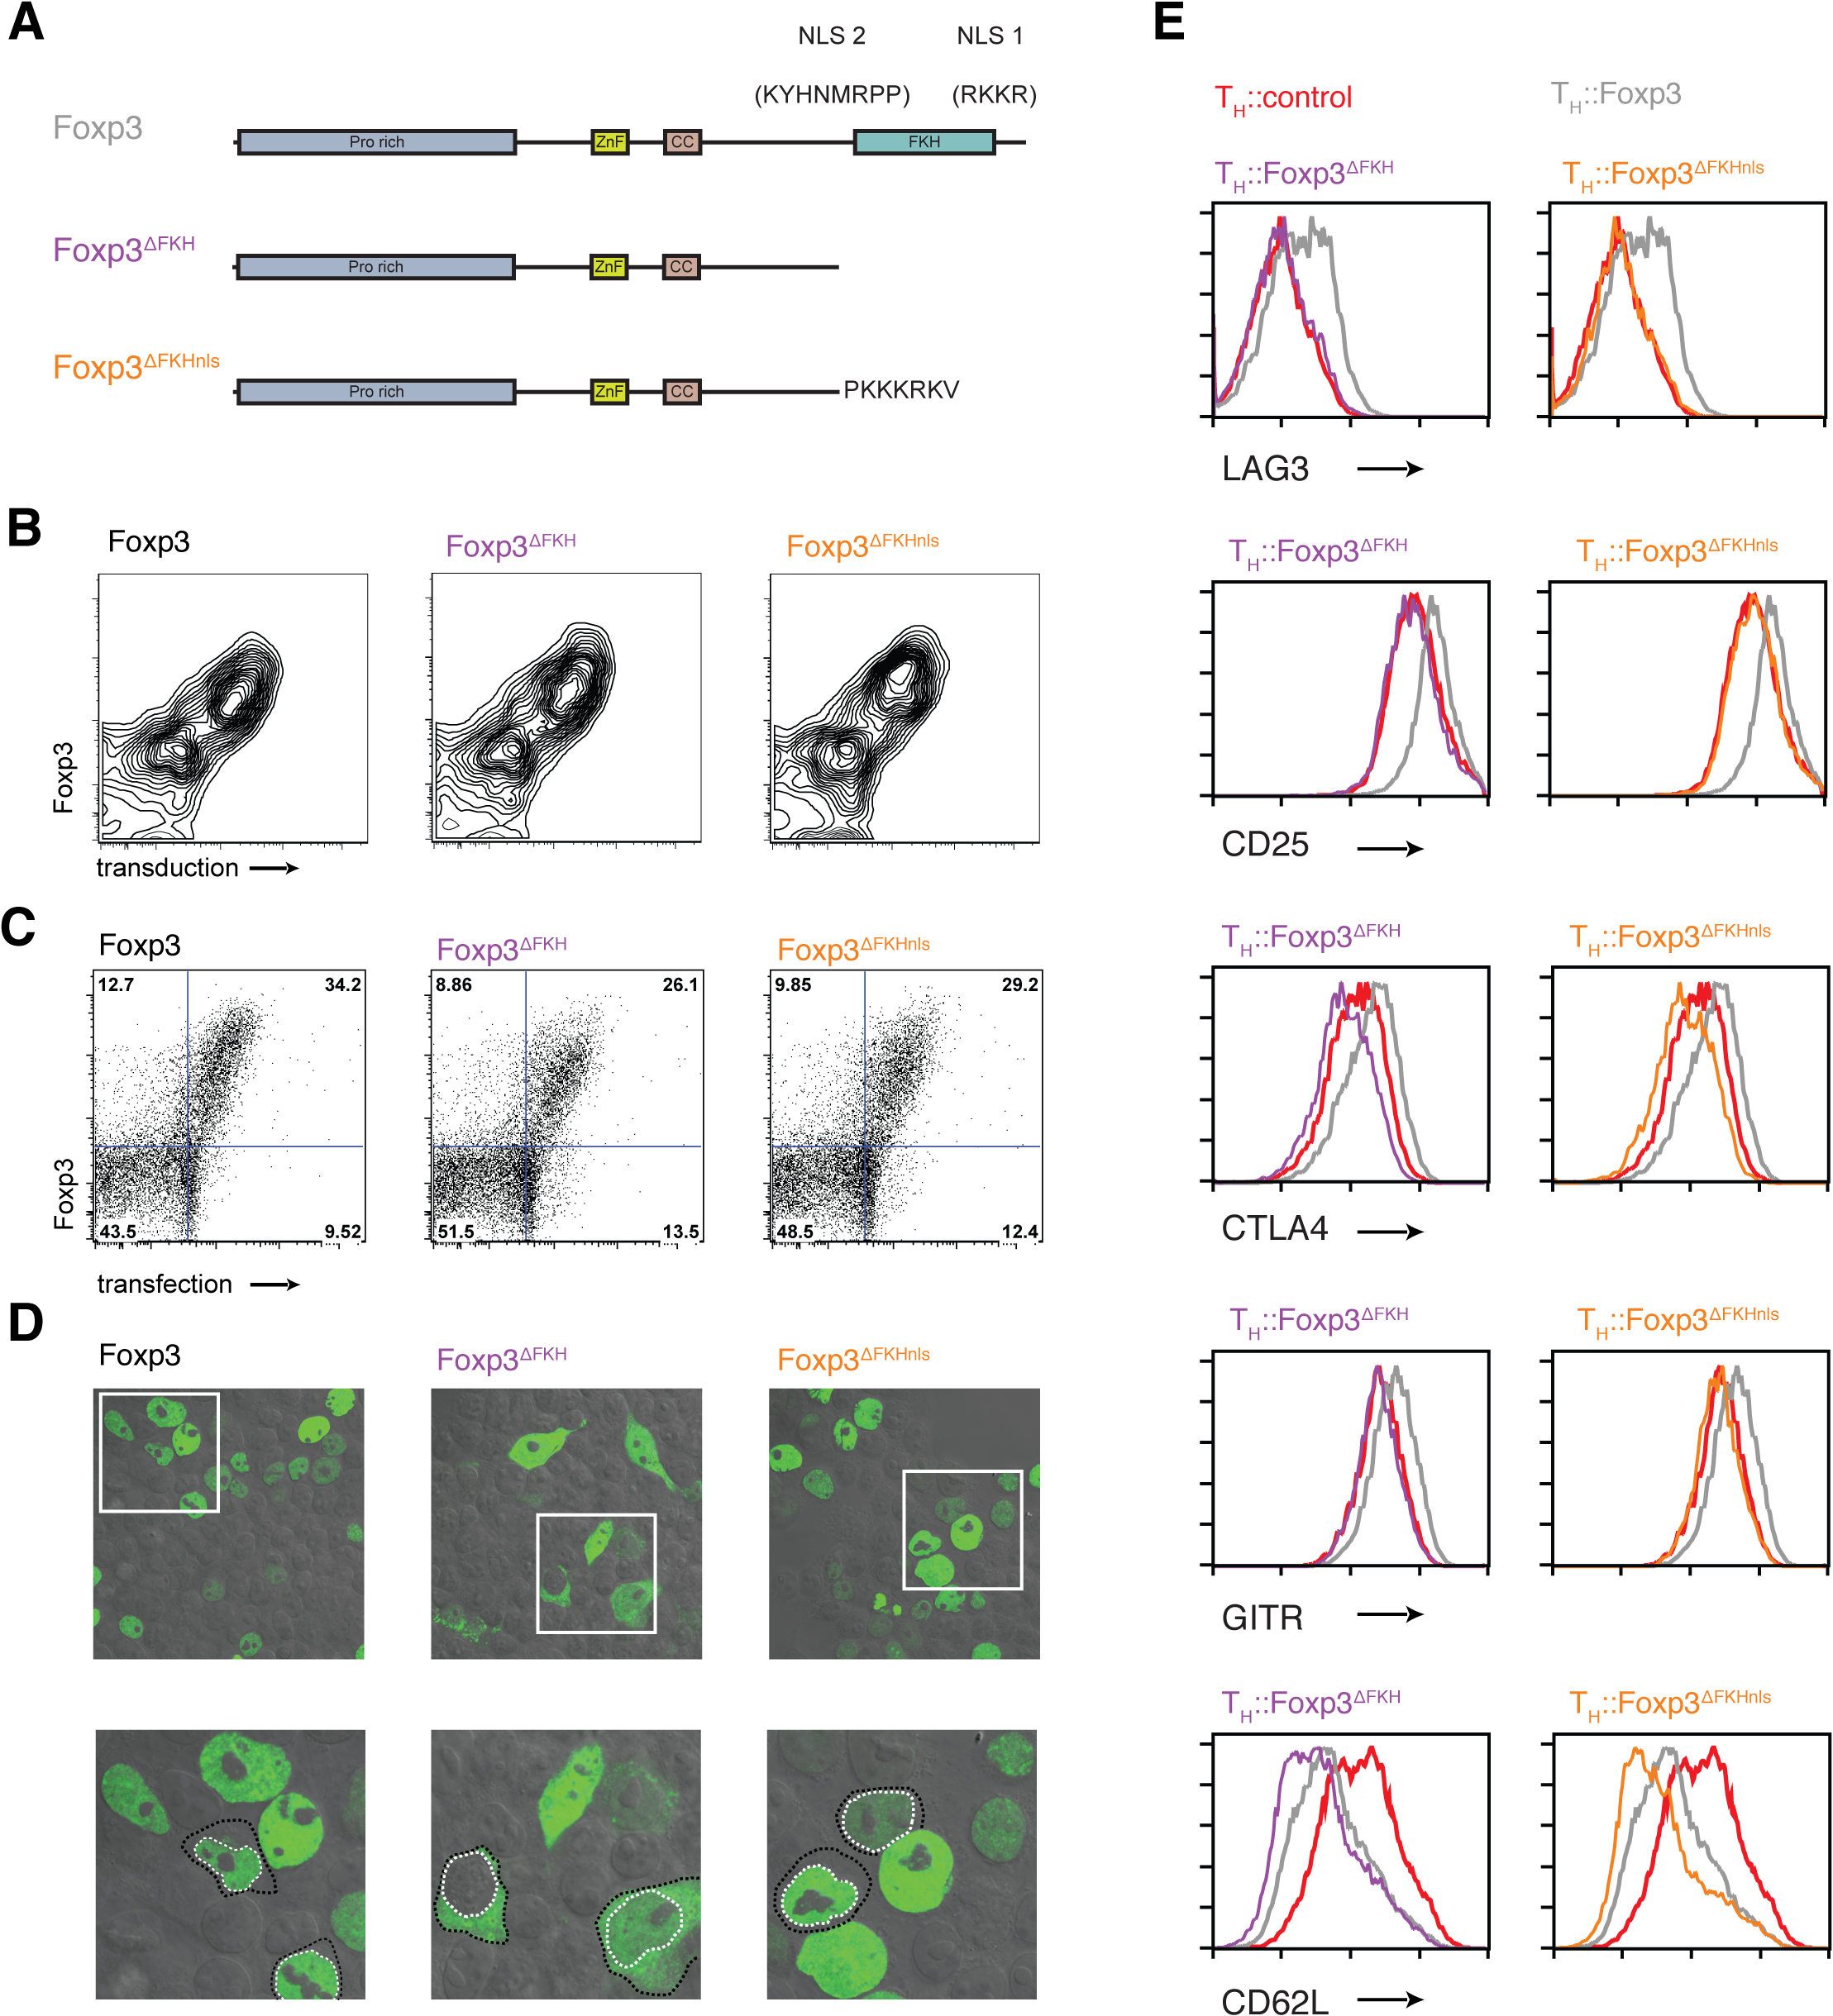 The role of nuclear localisation signals in the forkhead domain of Foxp3.